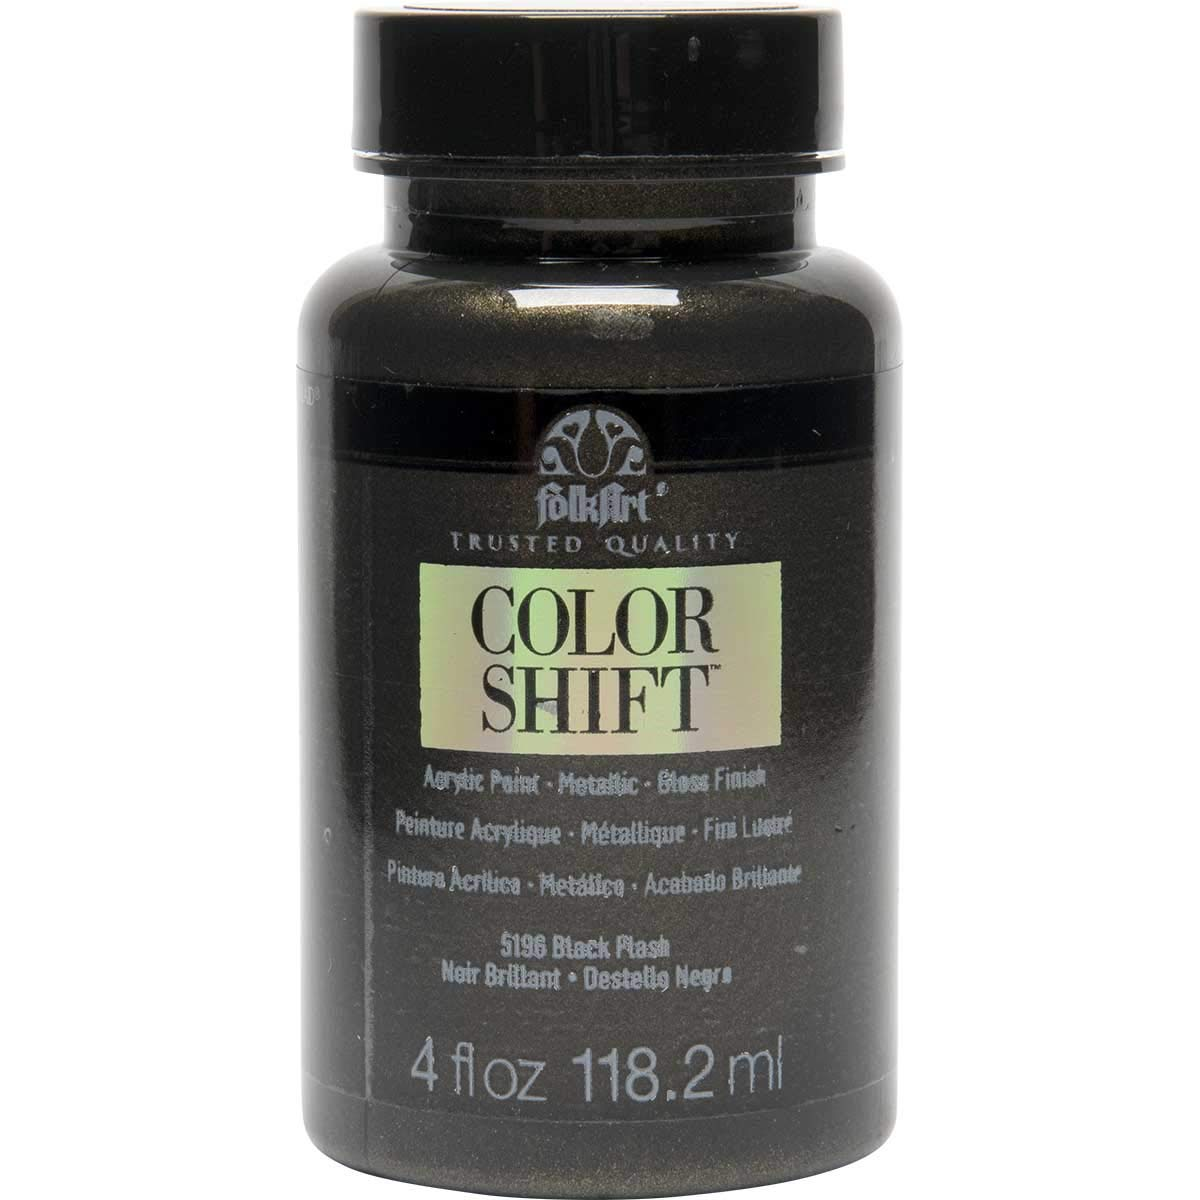 FolkArt Color Shift Acrylic Paint in Assorted Colors (4 oz), Black Flash